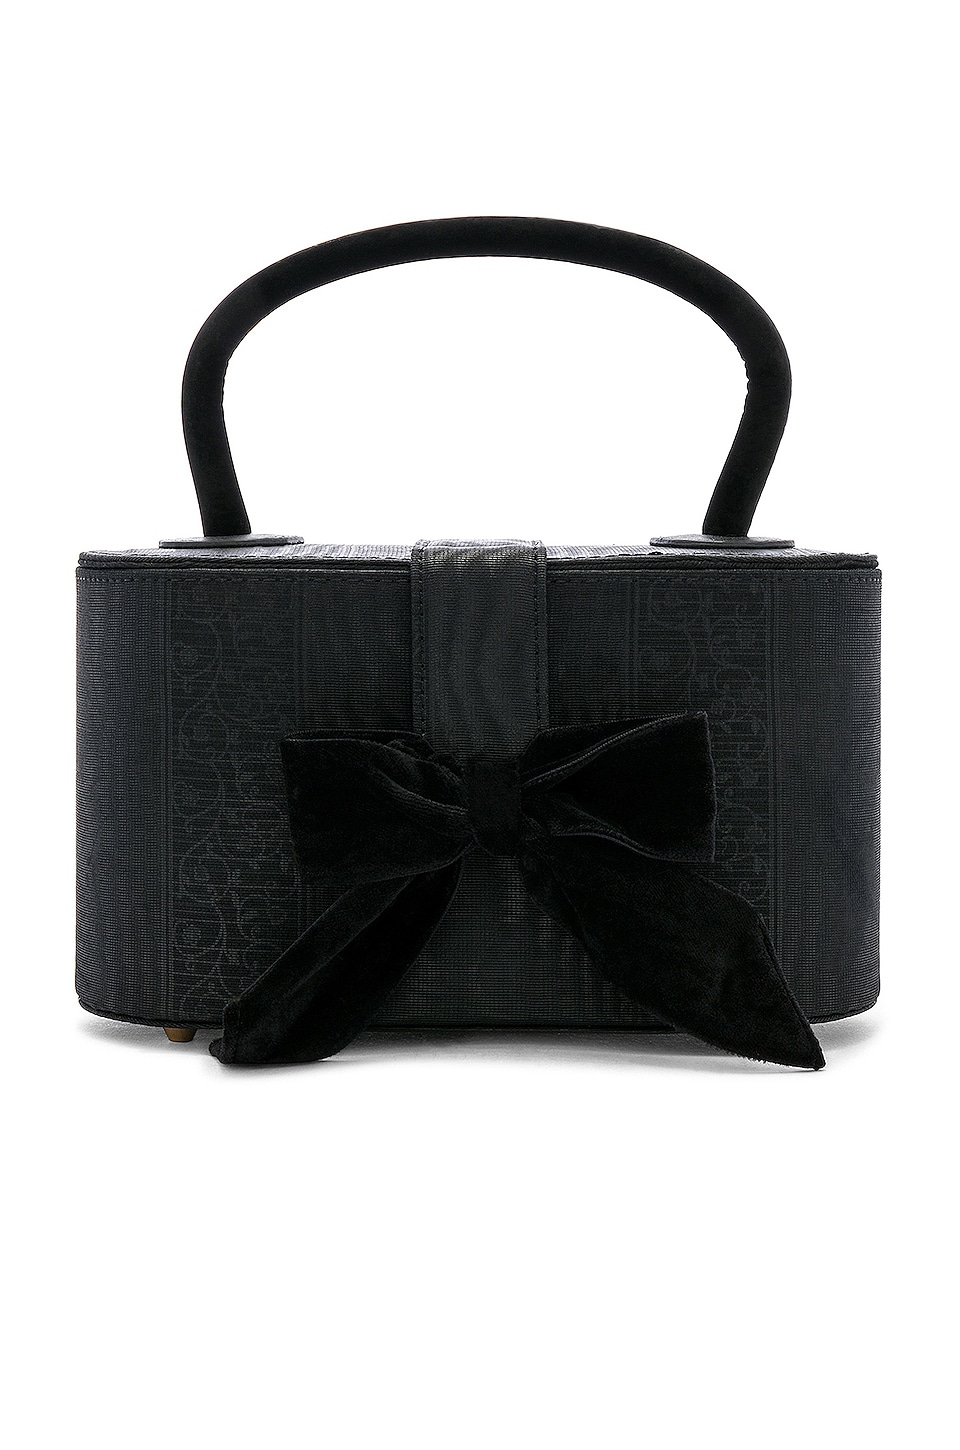 LPA Carmela Bag in Black